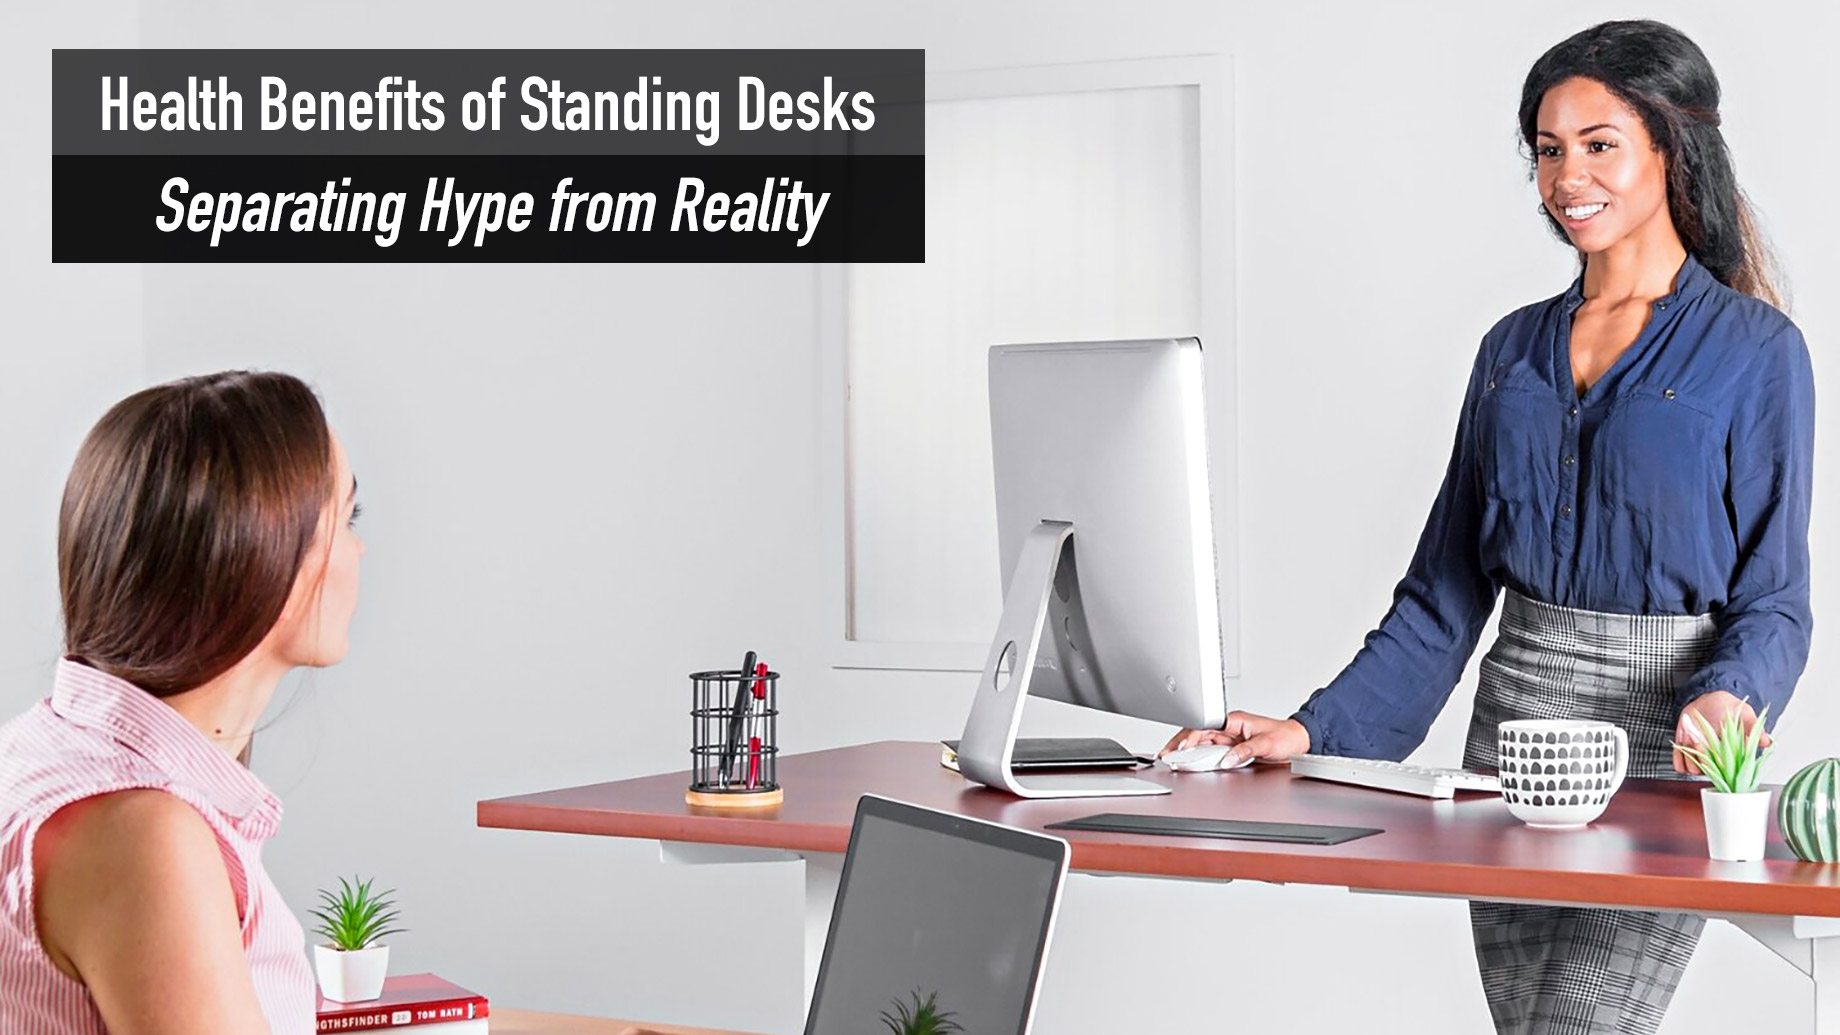 Health Benefits of Standing Desks - Separating Hype from Reality